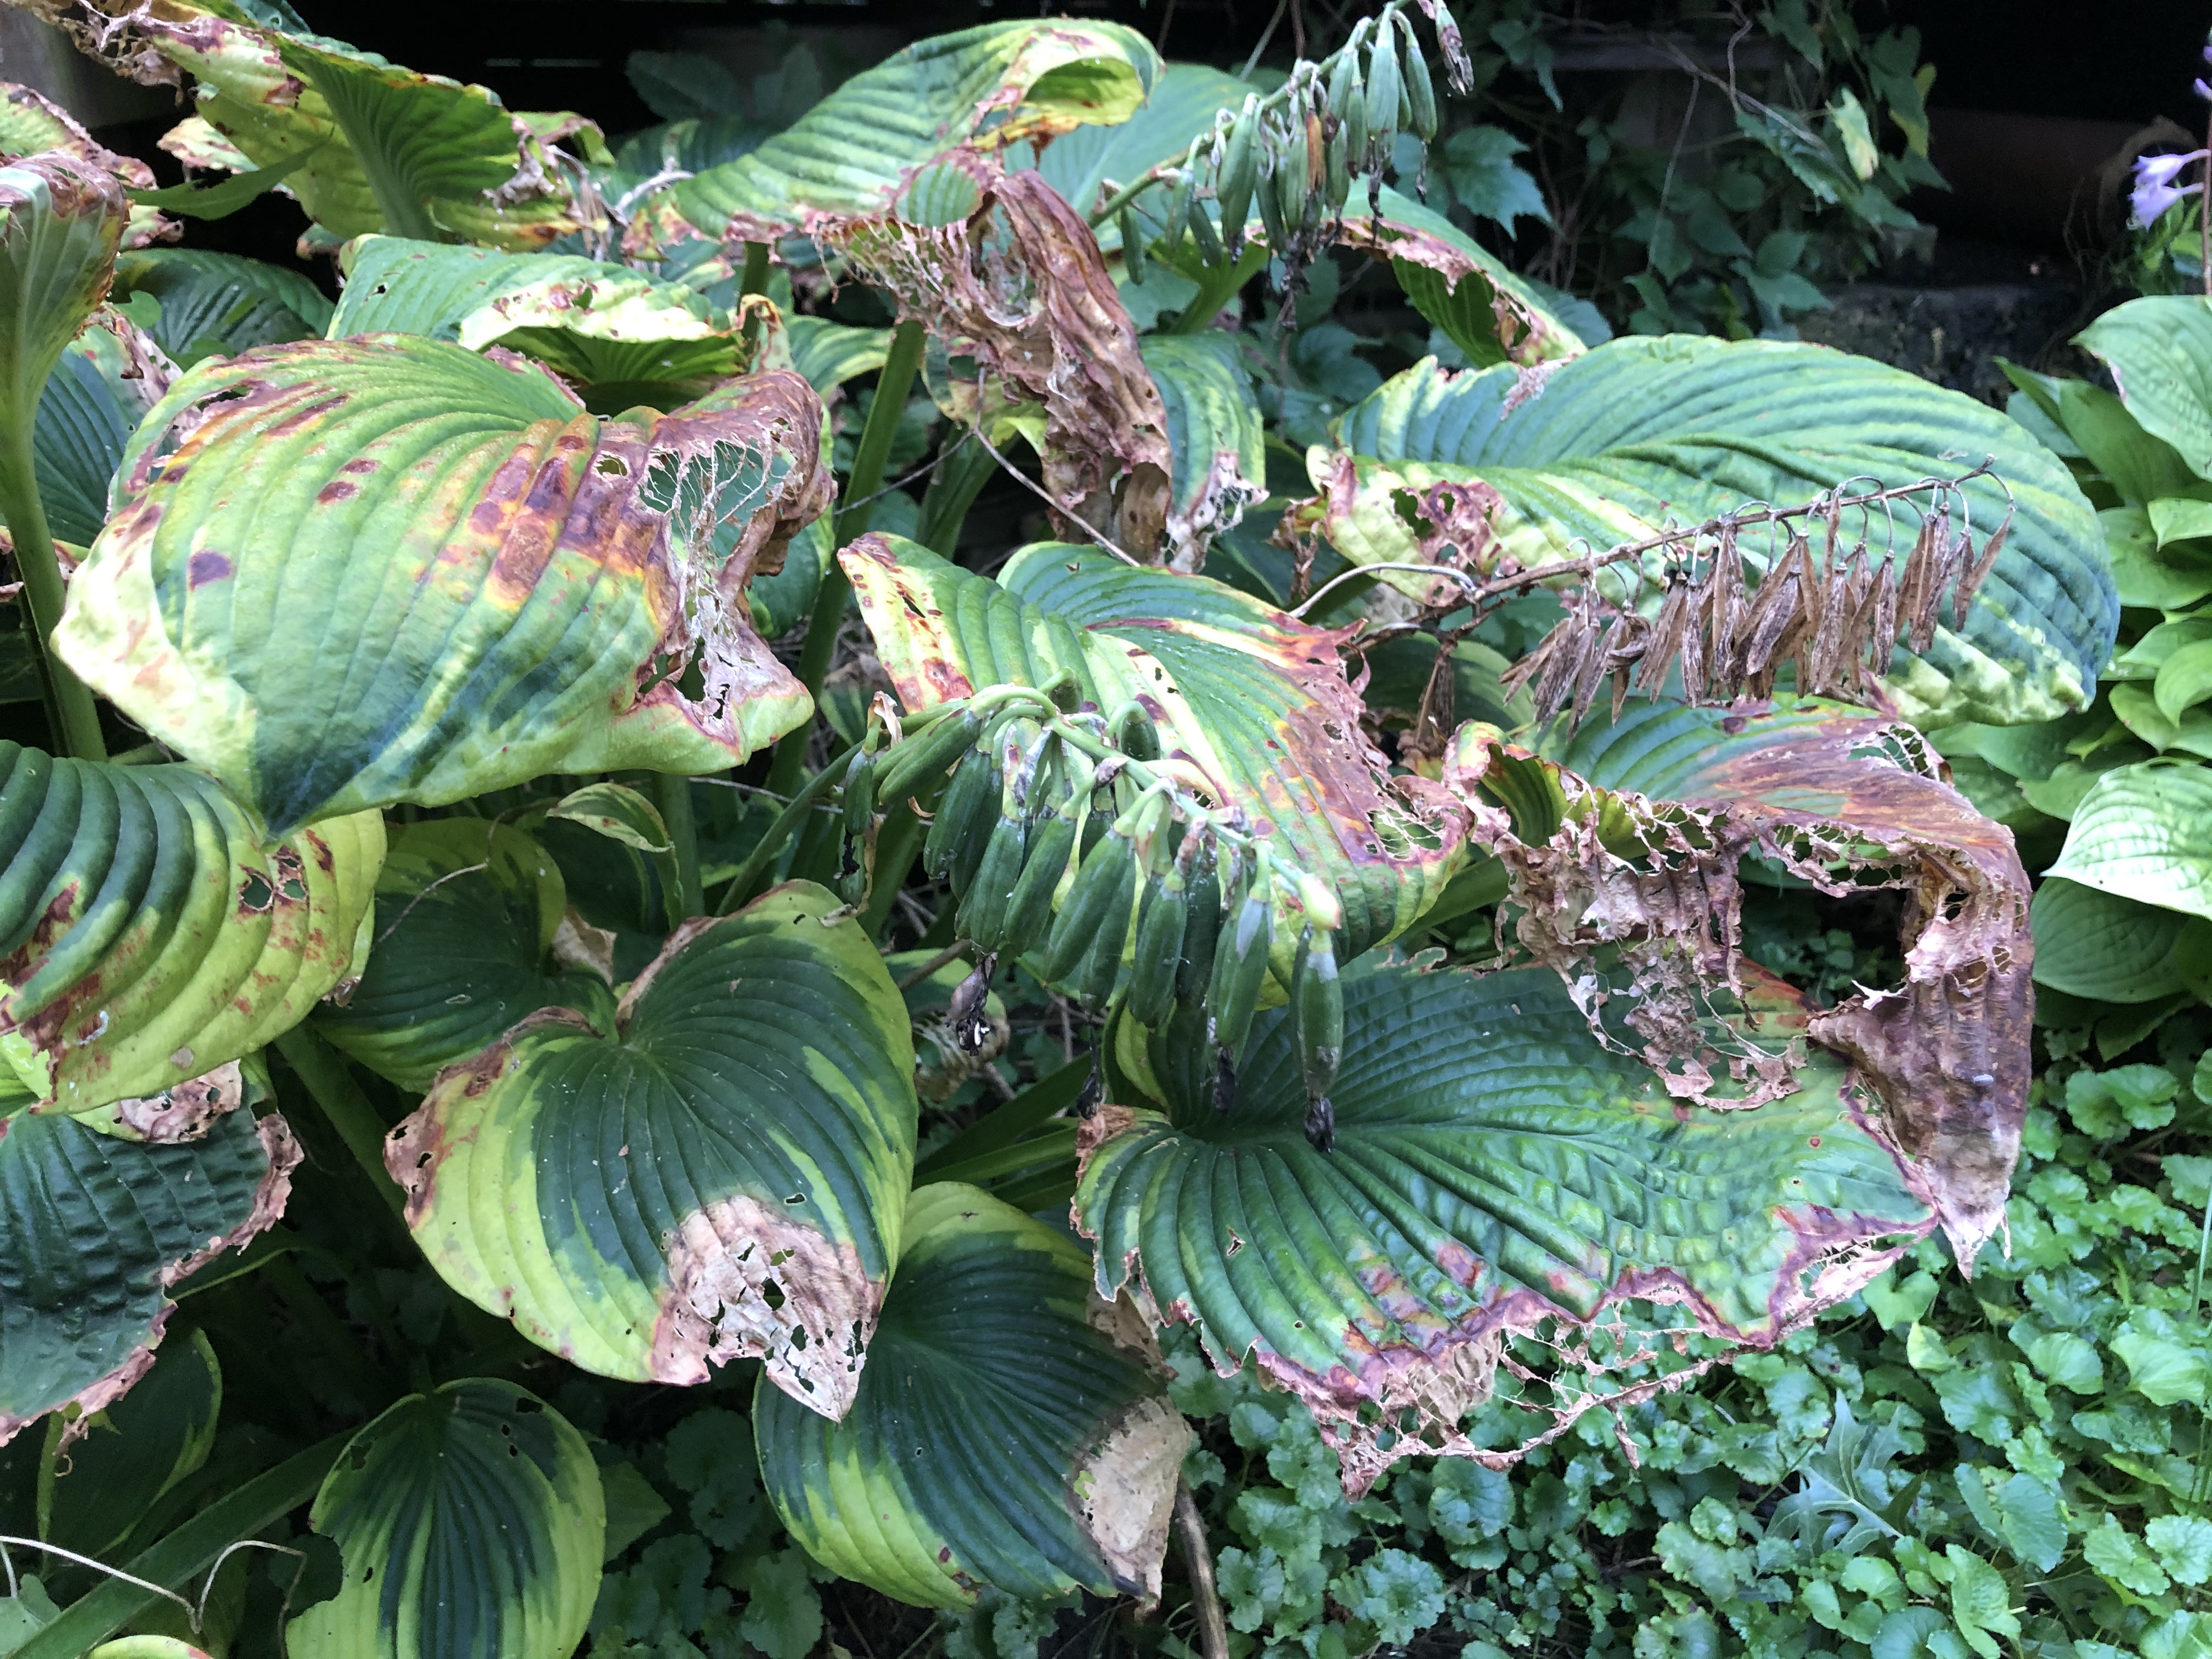 a leafy plant where the edges of the leaves are dying